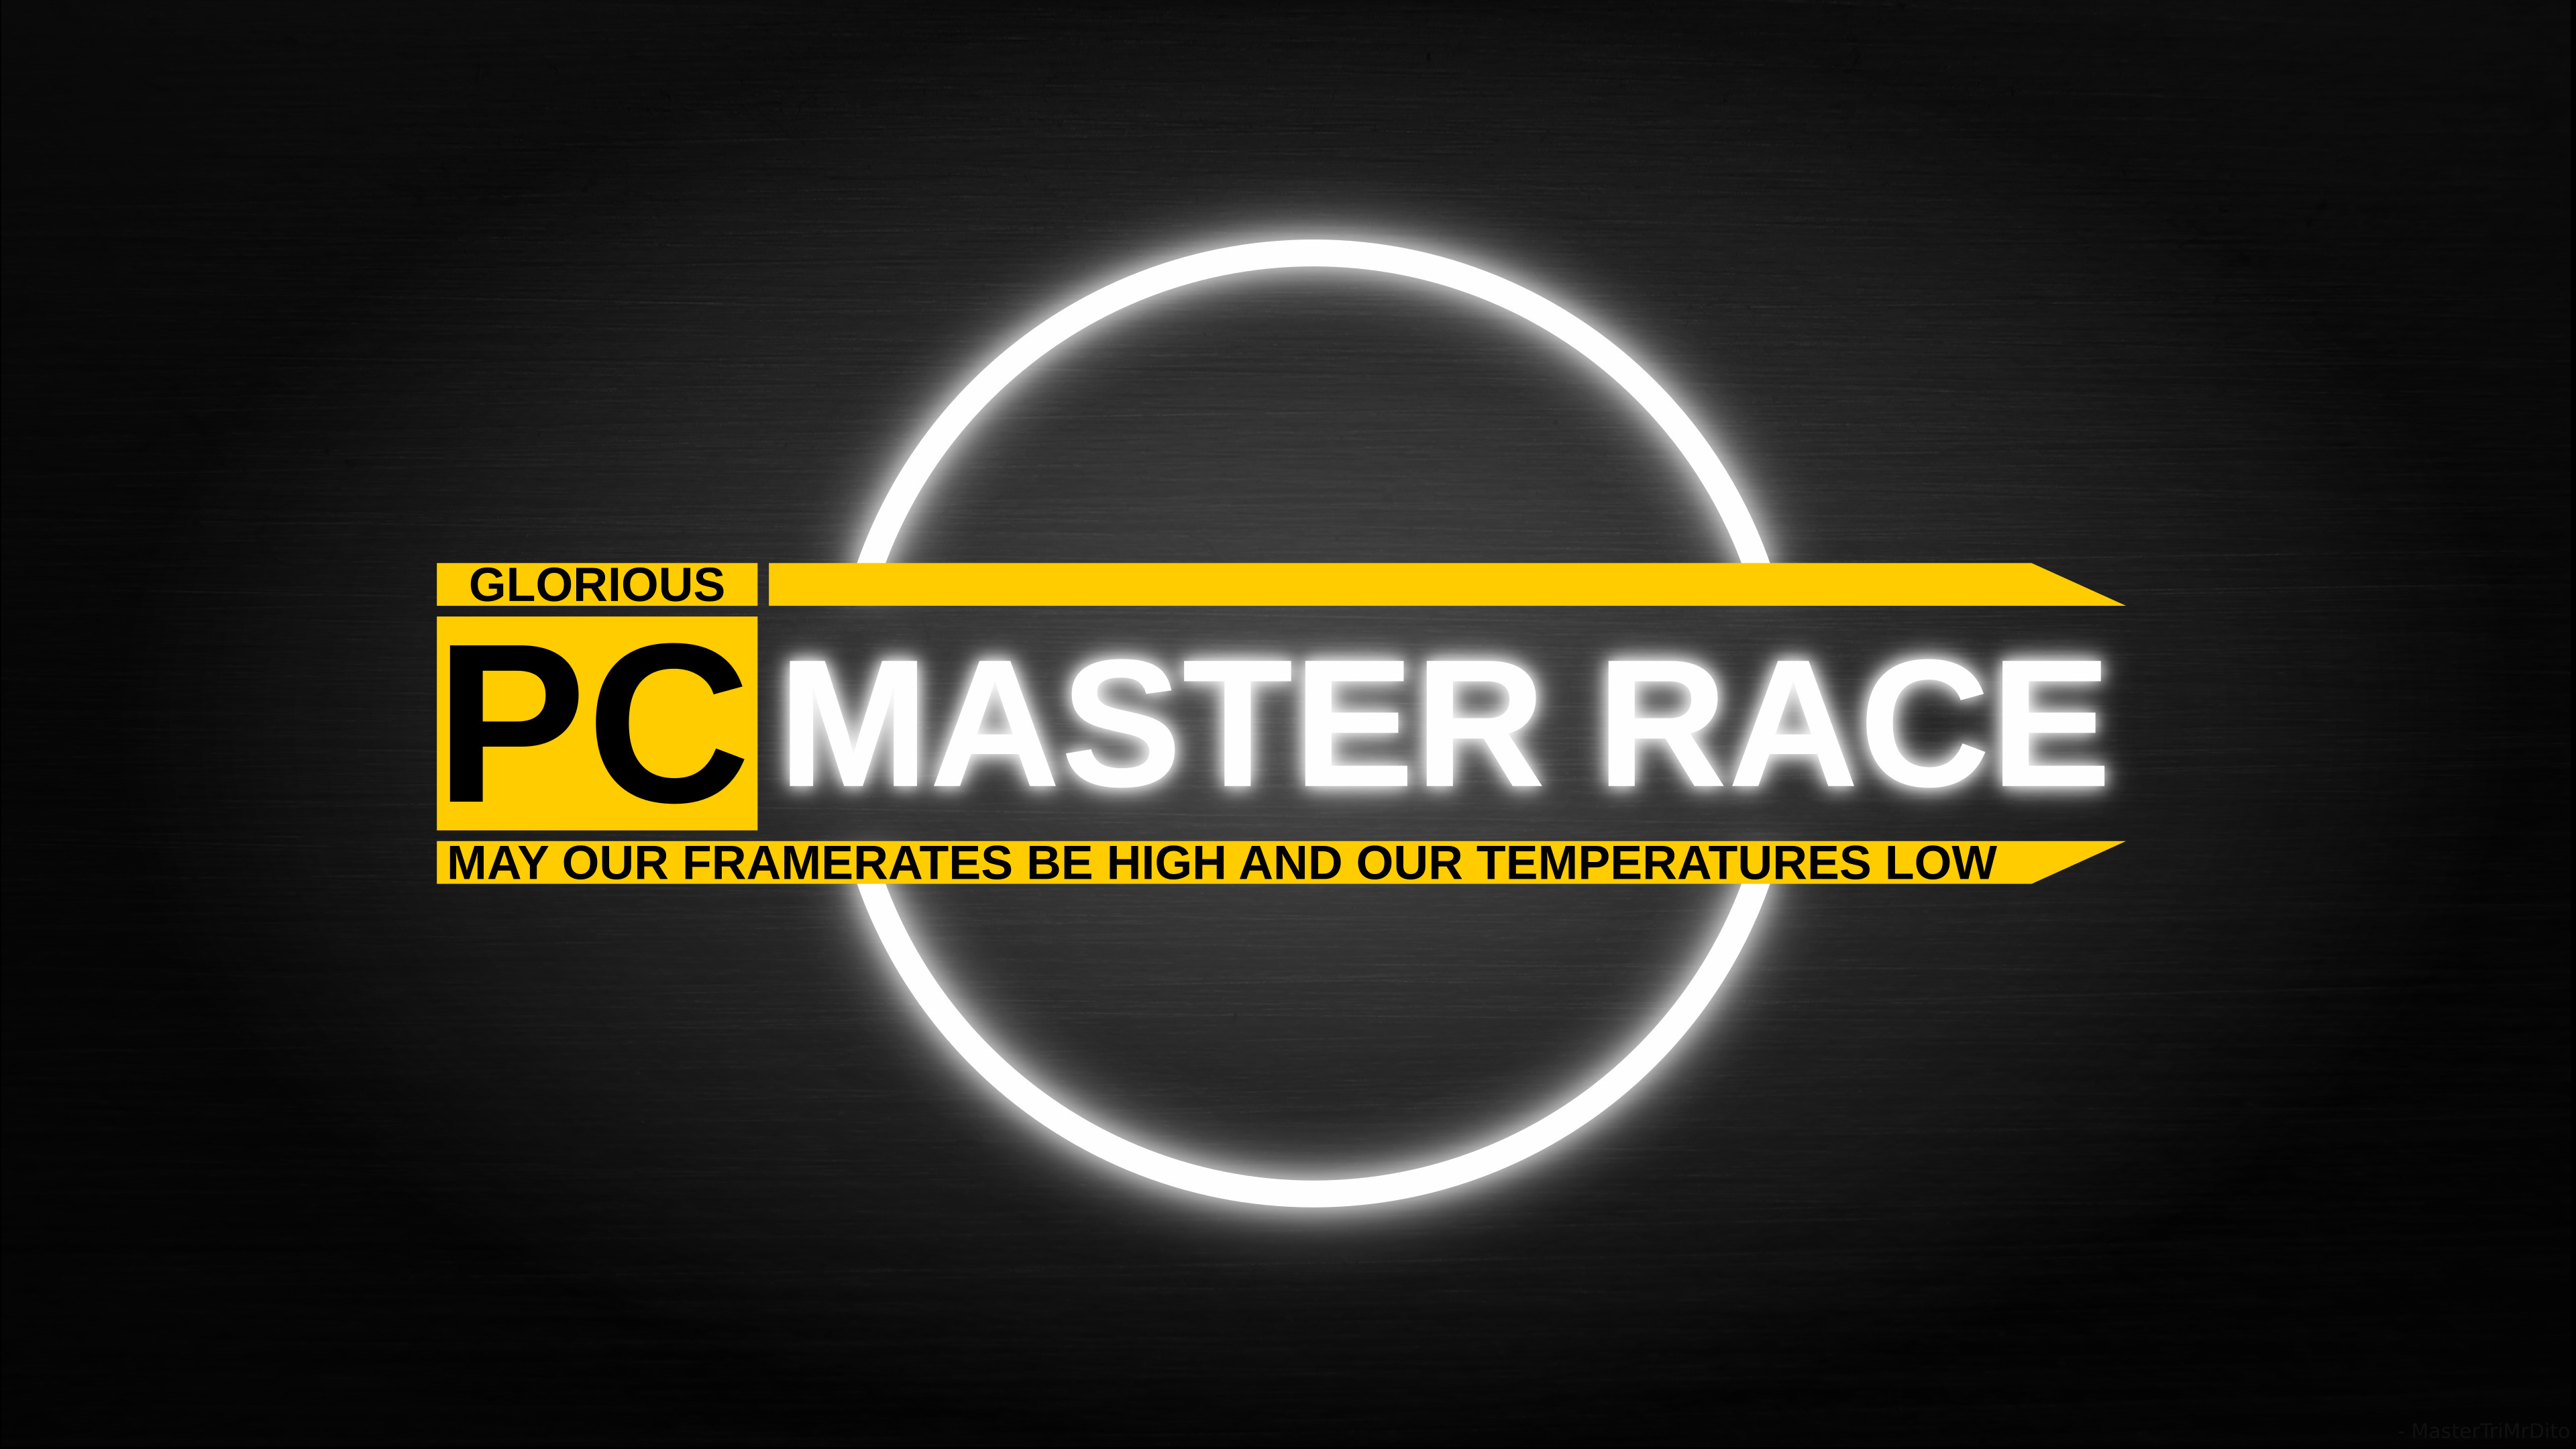 PC Master Race wallpapers (fixed)